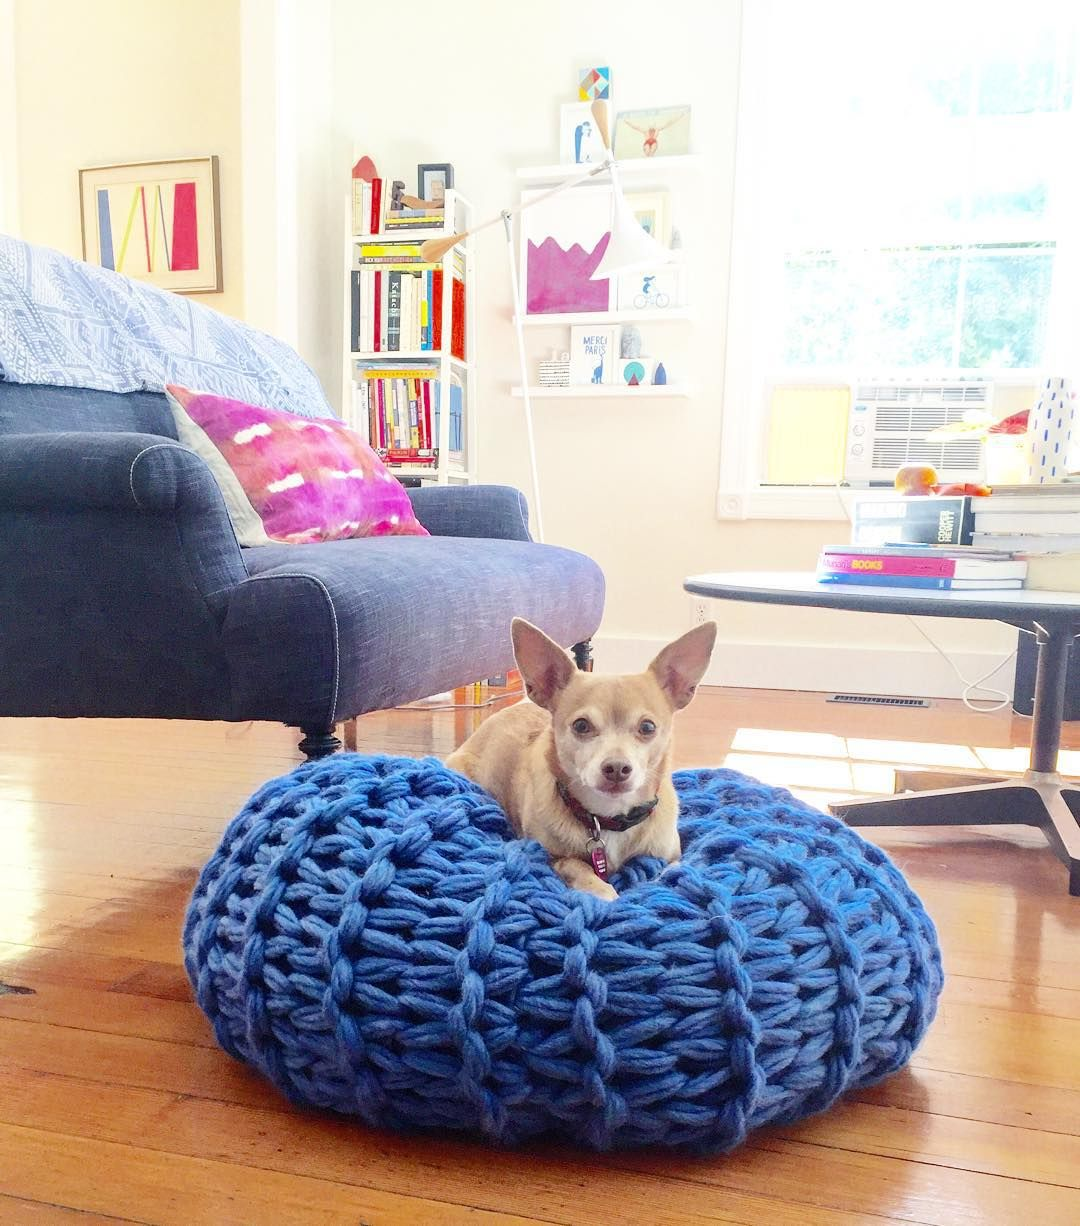 Wilfredo loves our new arm-knitted pouf! // today on the blog: an interview with the multi-talented @flaxandtwine about her new book Knitting Without Needles // Anne's new book is rich with easy & gorgeous hand & arm knitting projects // tons of pictures & links (along with my interview with Anne) on my blog today (link in profile)  by lisacongdon